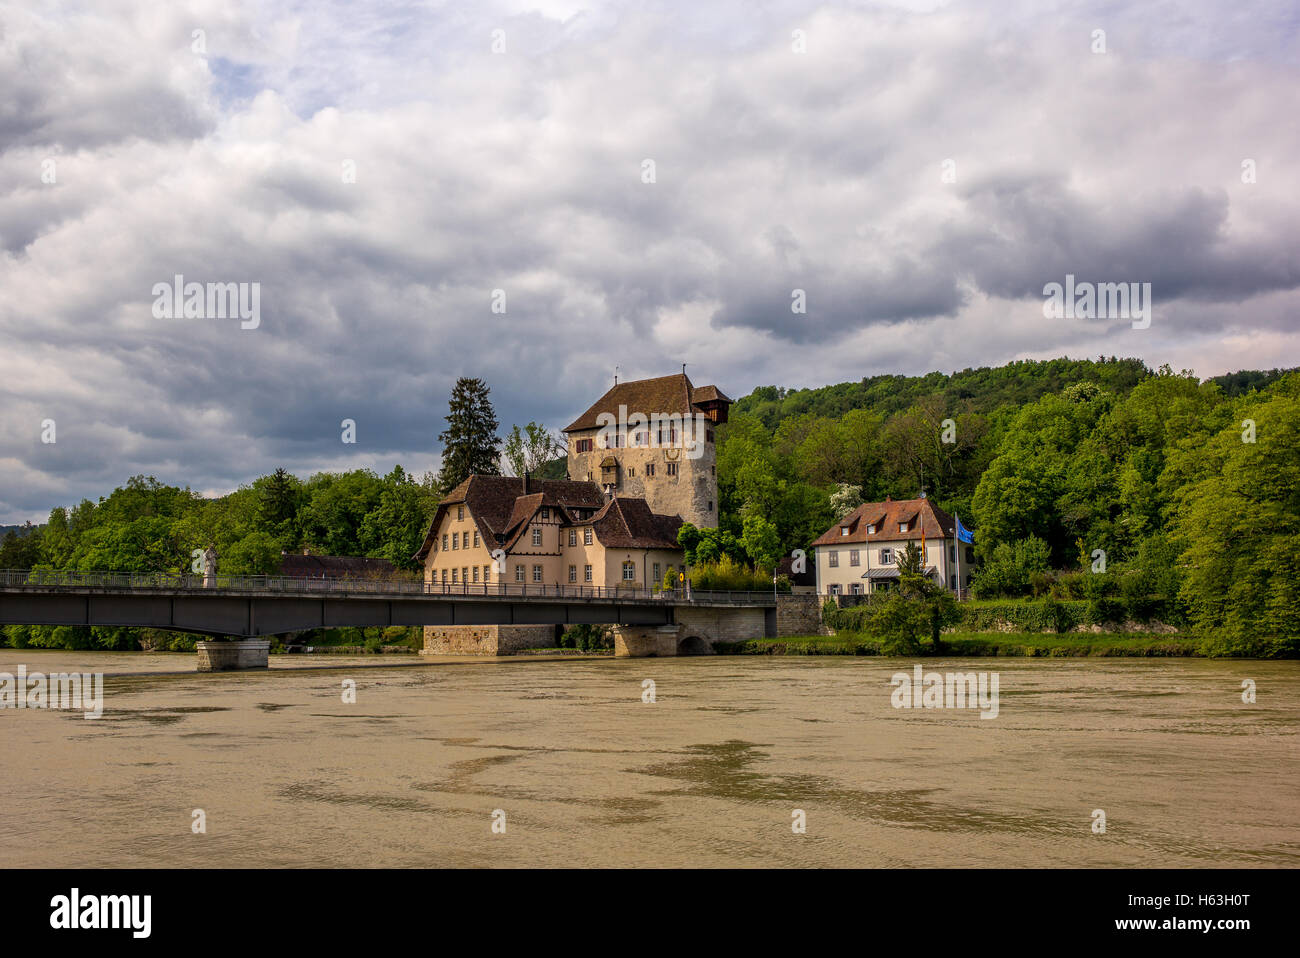 View of the bridge and castle in Kaiserstuhl of Switzerland with the Rhine river in flood - Stock Image